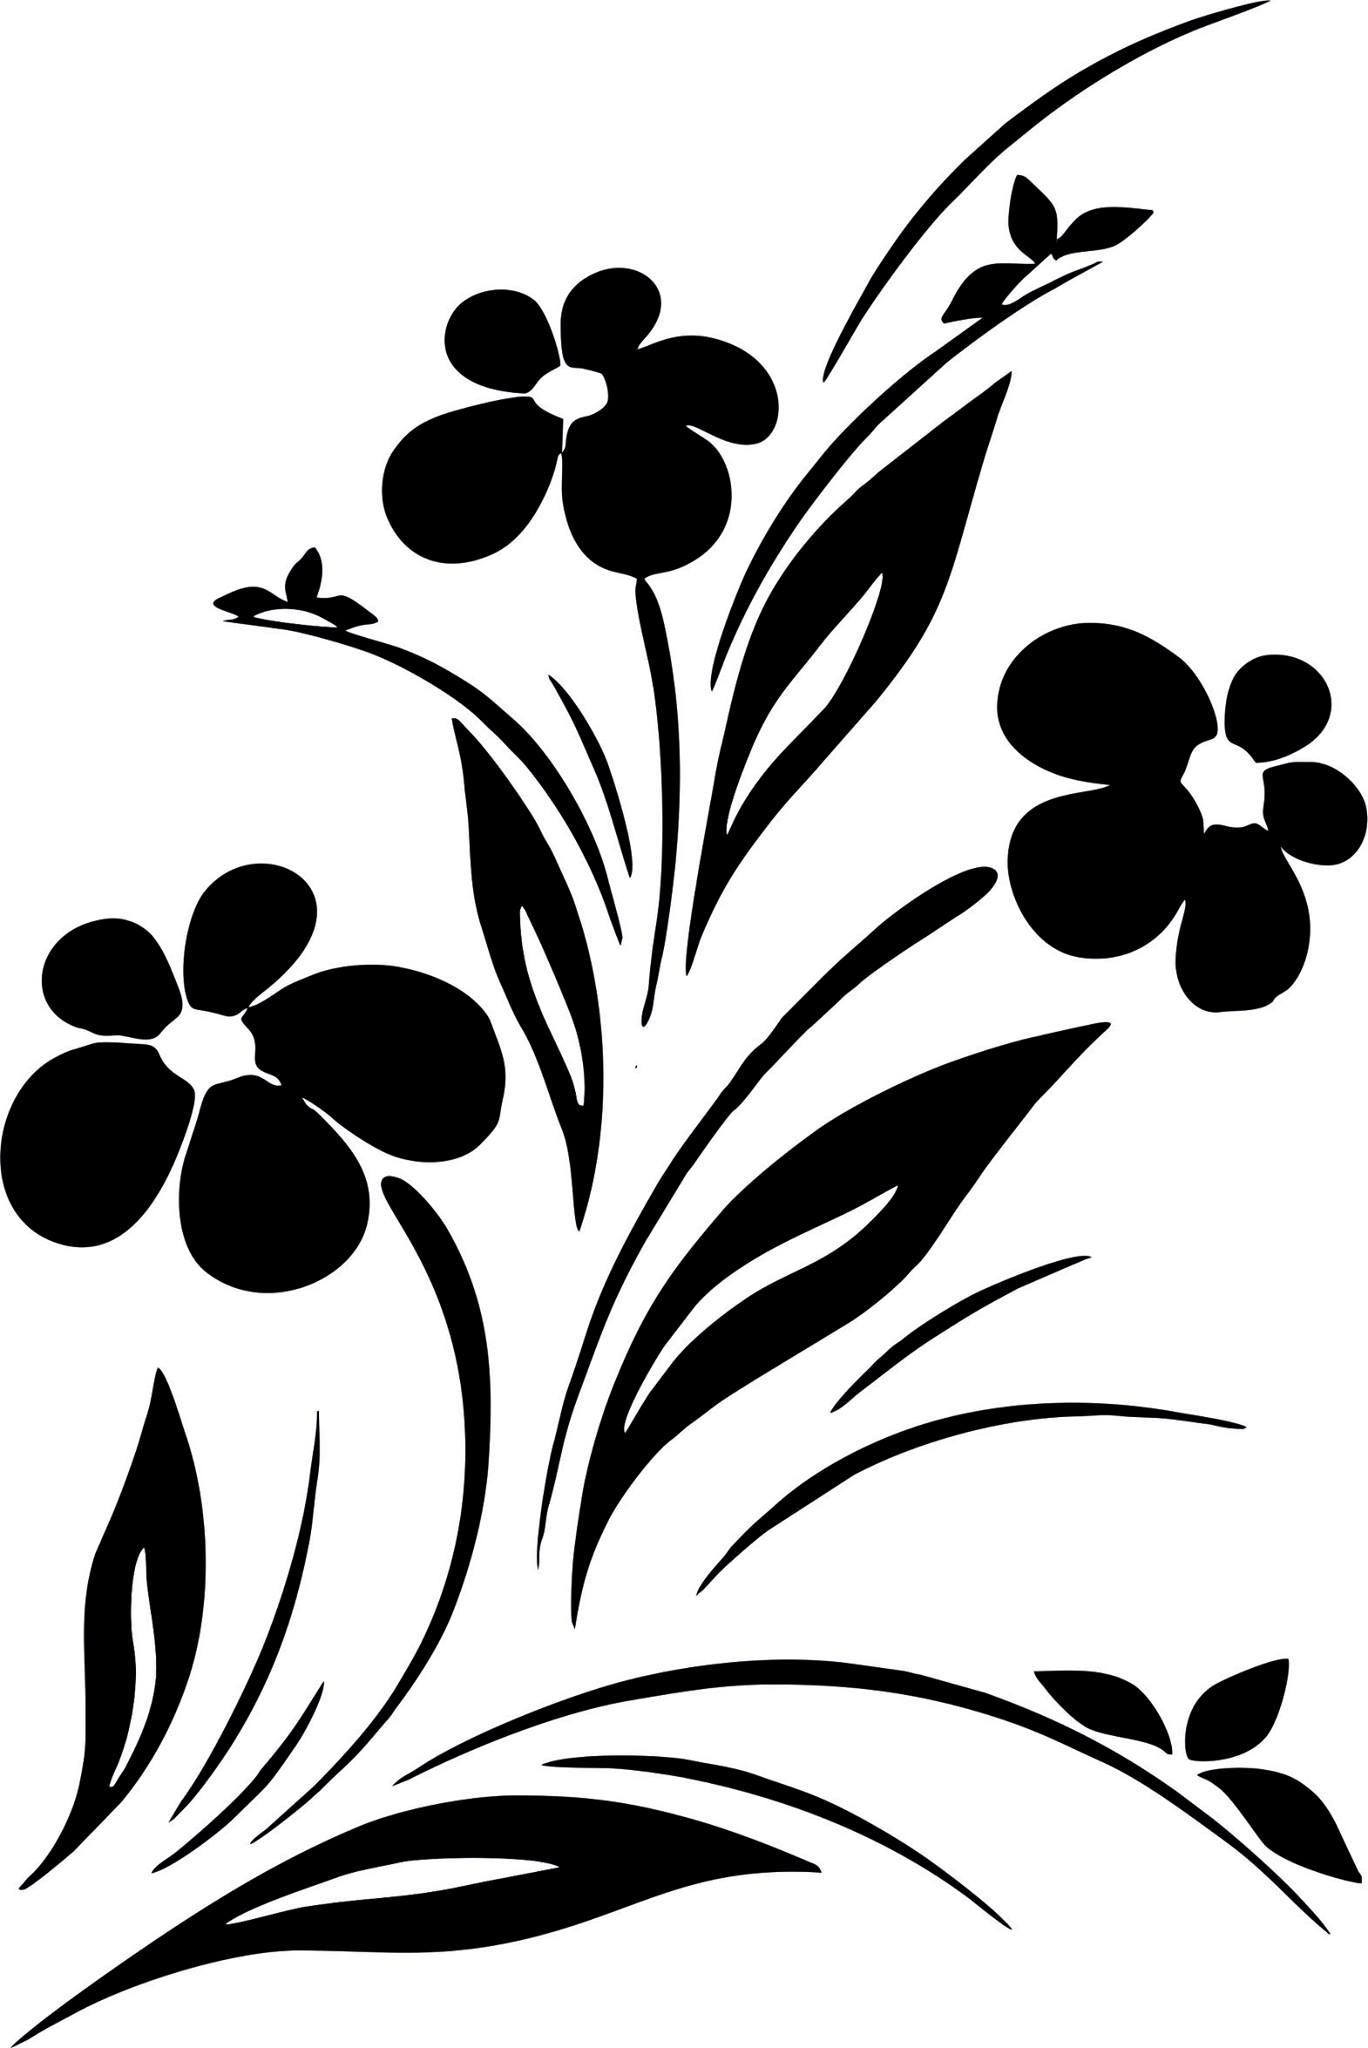 Simple flower designs black and white vector art jpg image free simple flower designs black and white vector art jpg image free download 3axis mightylinksfo